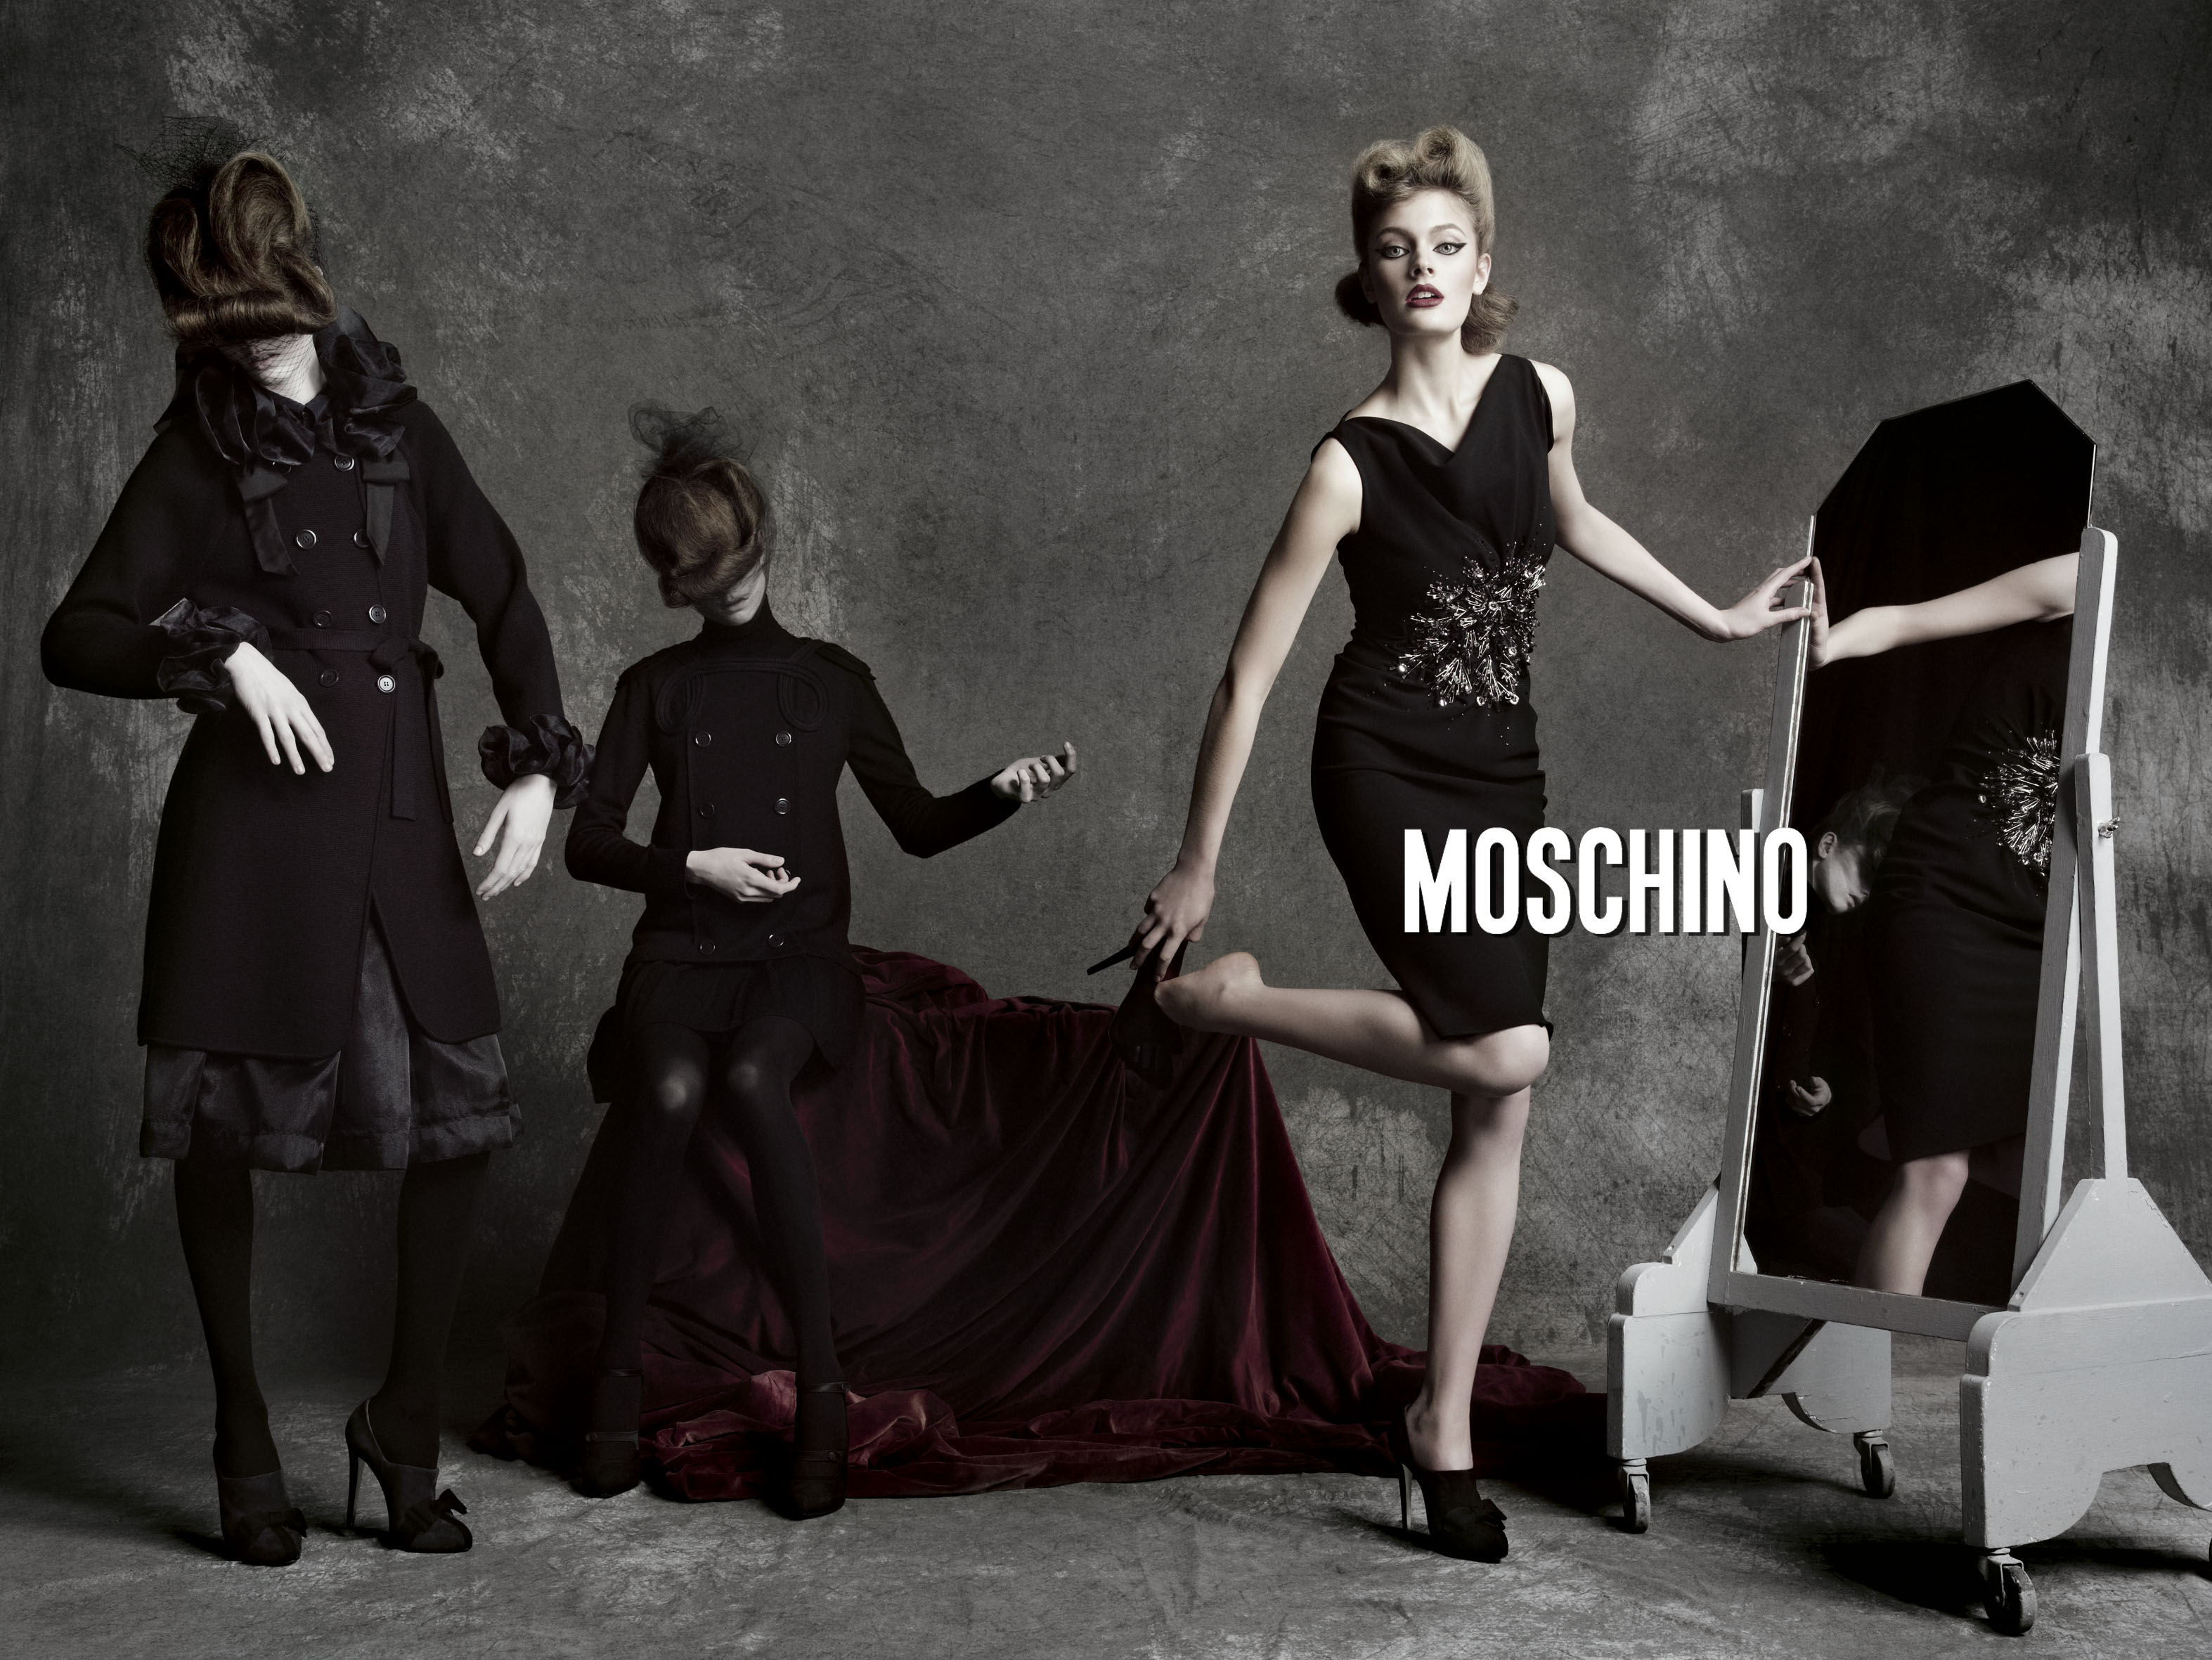 Moschino Fall 2009 | Tom Munro | Moschino | Rolling Stone Italia | Simona Melegari | Numerique Retouch Photo Retouching Studio